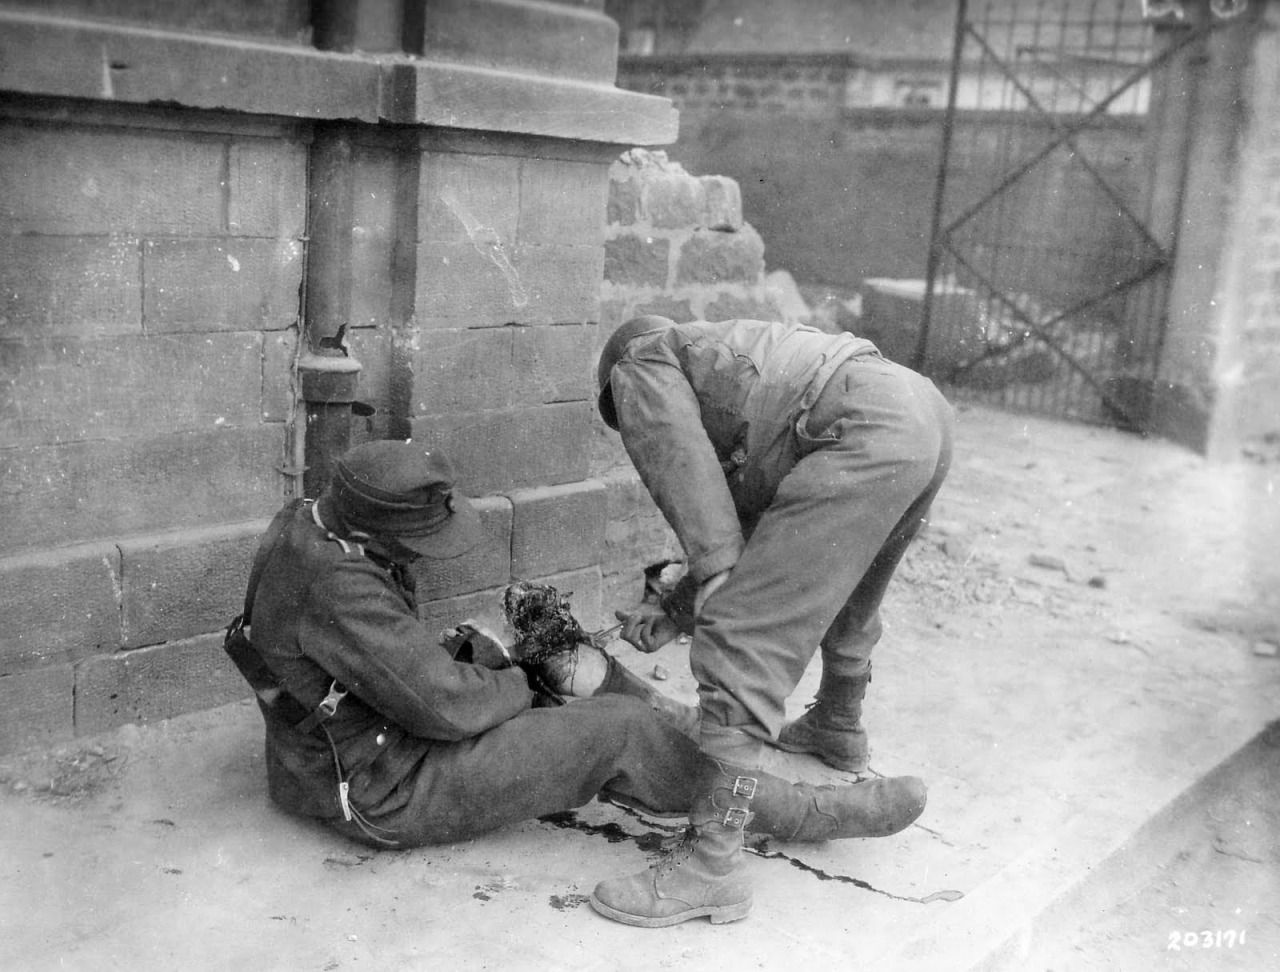 An American soldier tending to a wounded